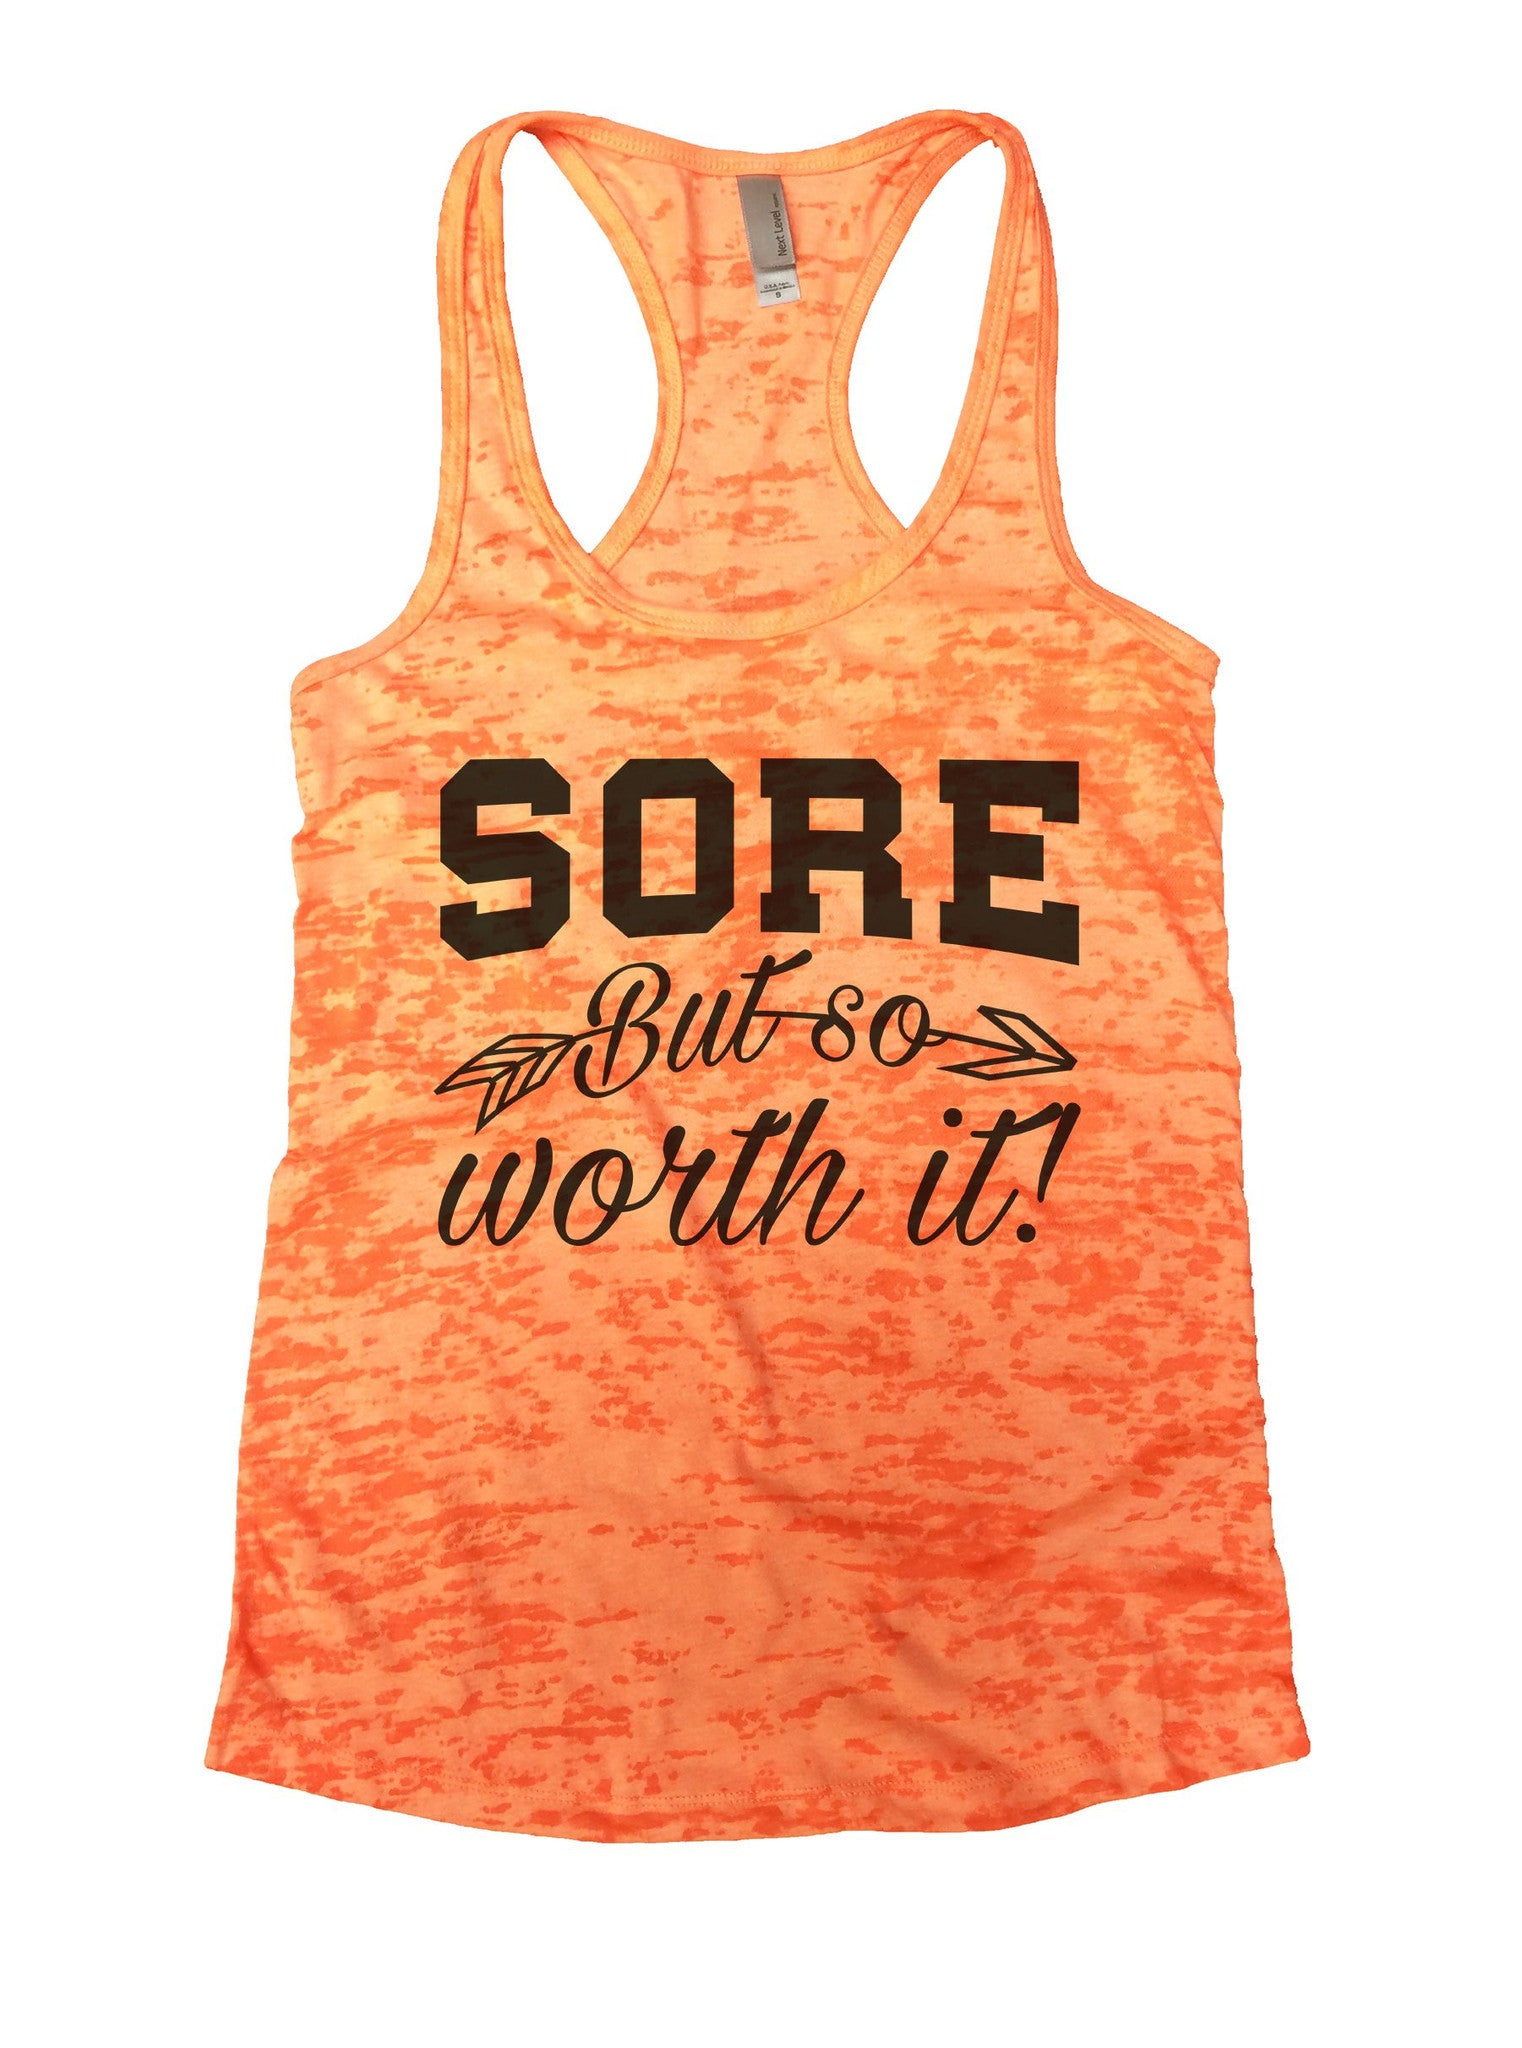 Sore But So Worth It! Burnout Tank Top By BurnoutTankTops.com - 1070 - Funny Shirts Tank Tops Burnouts and Triblends  - 3